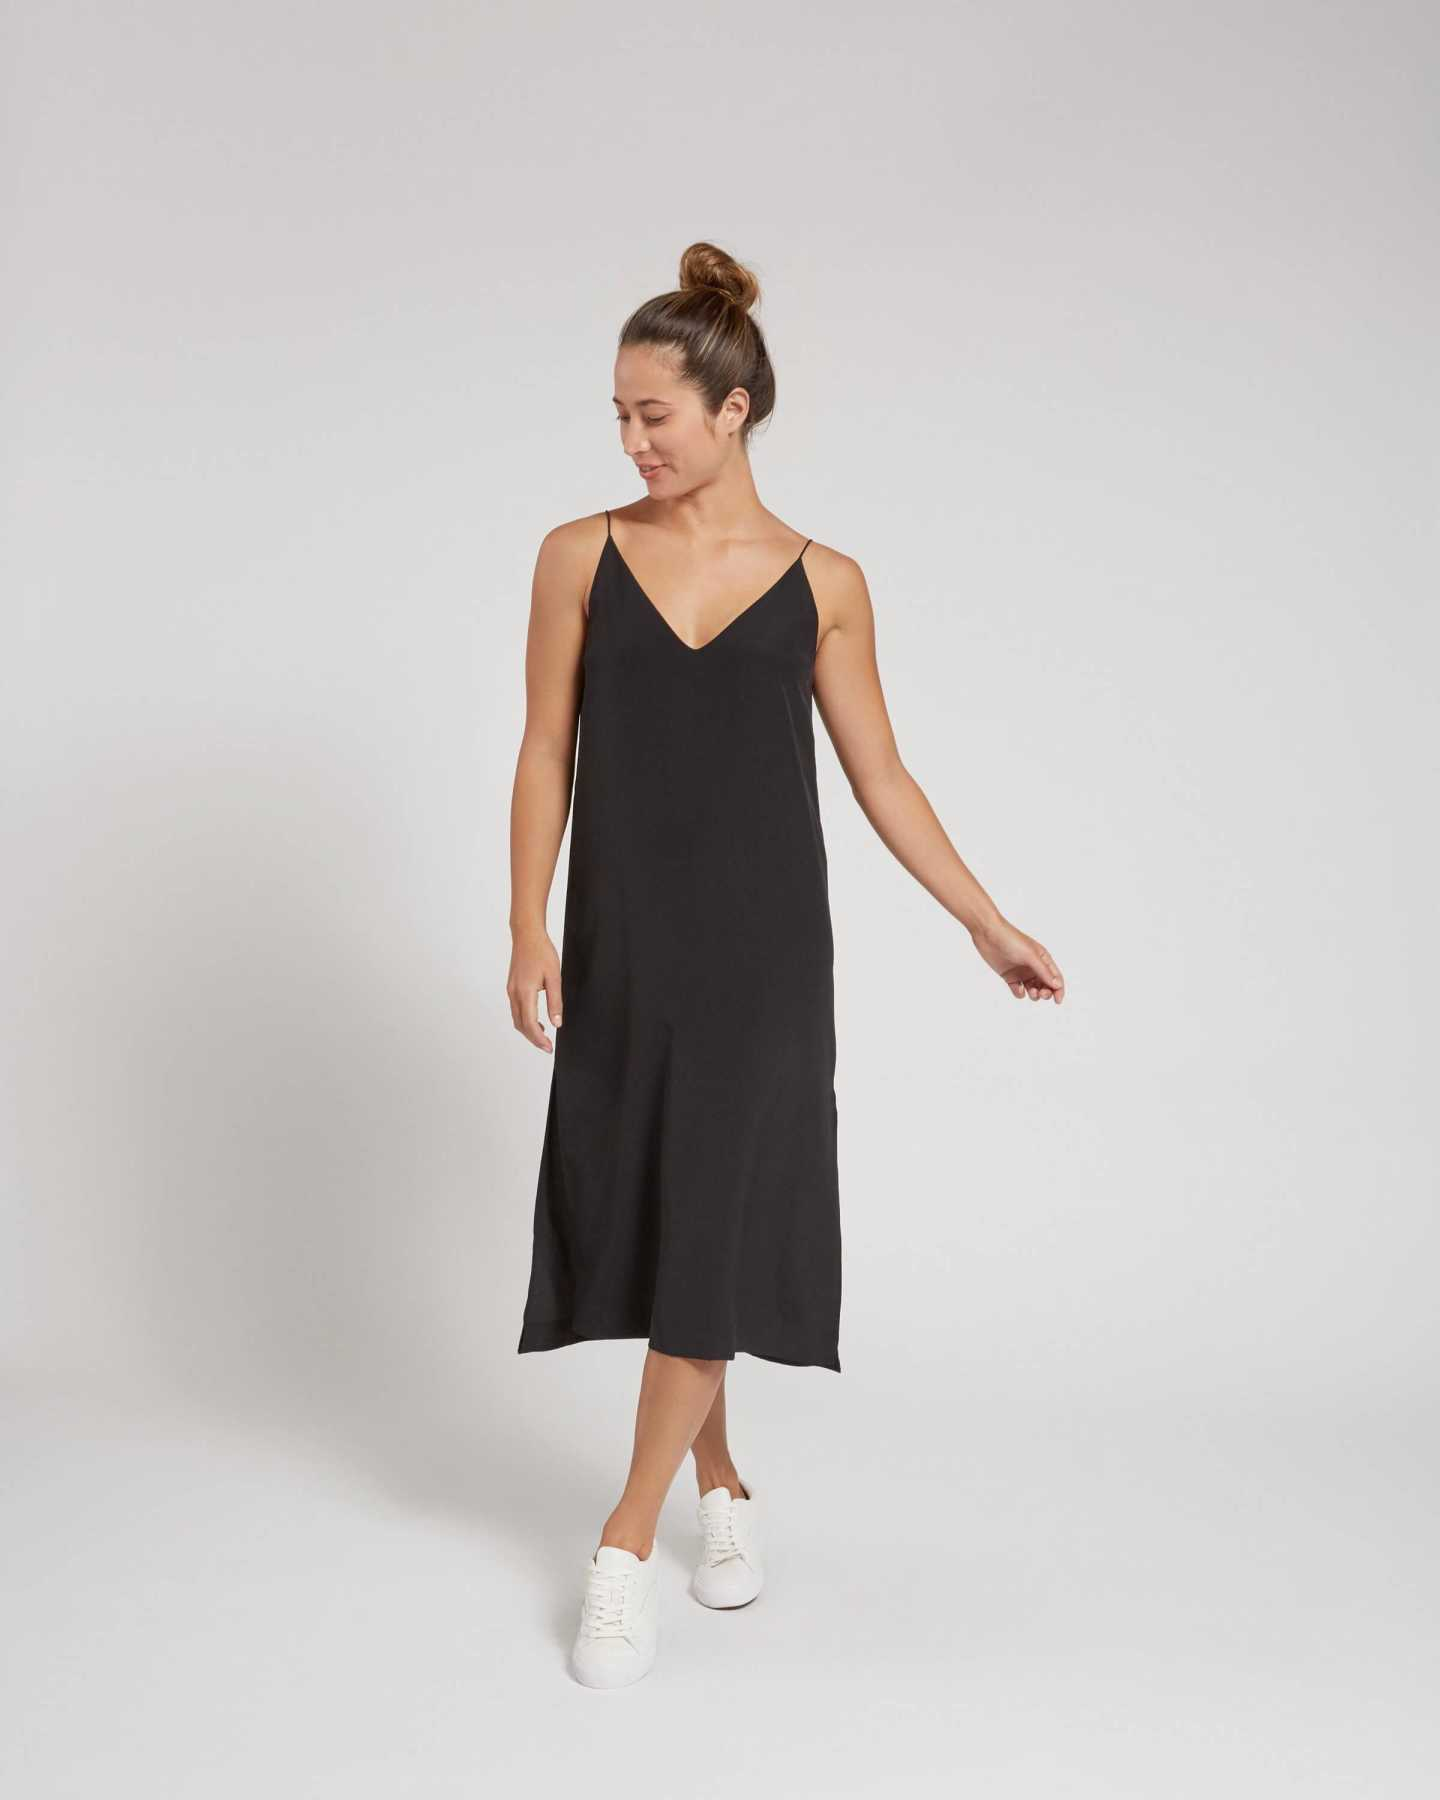 Premium Silk Slip Dress - Black